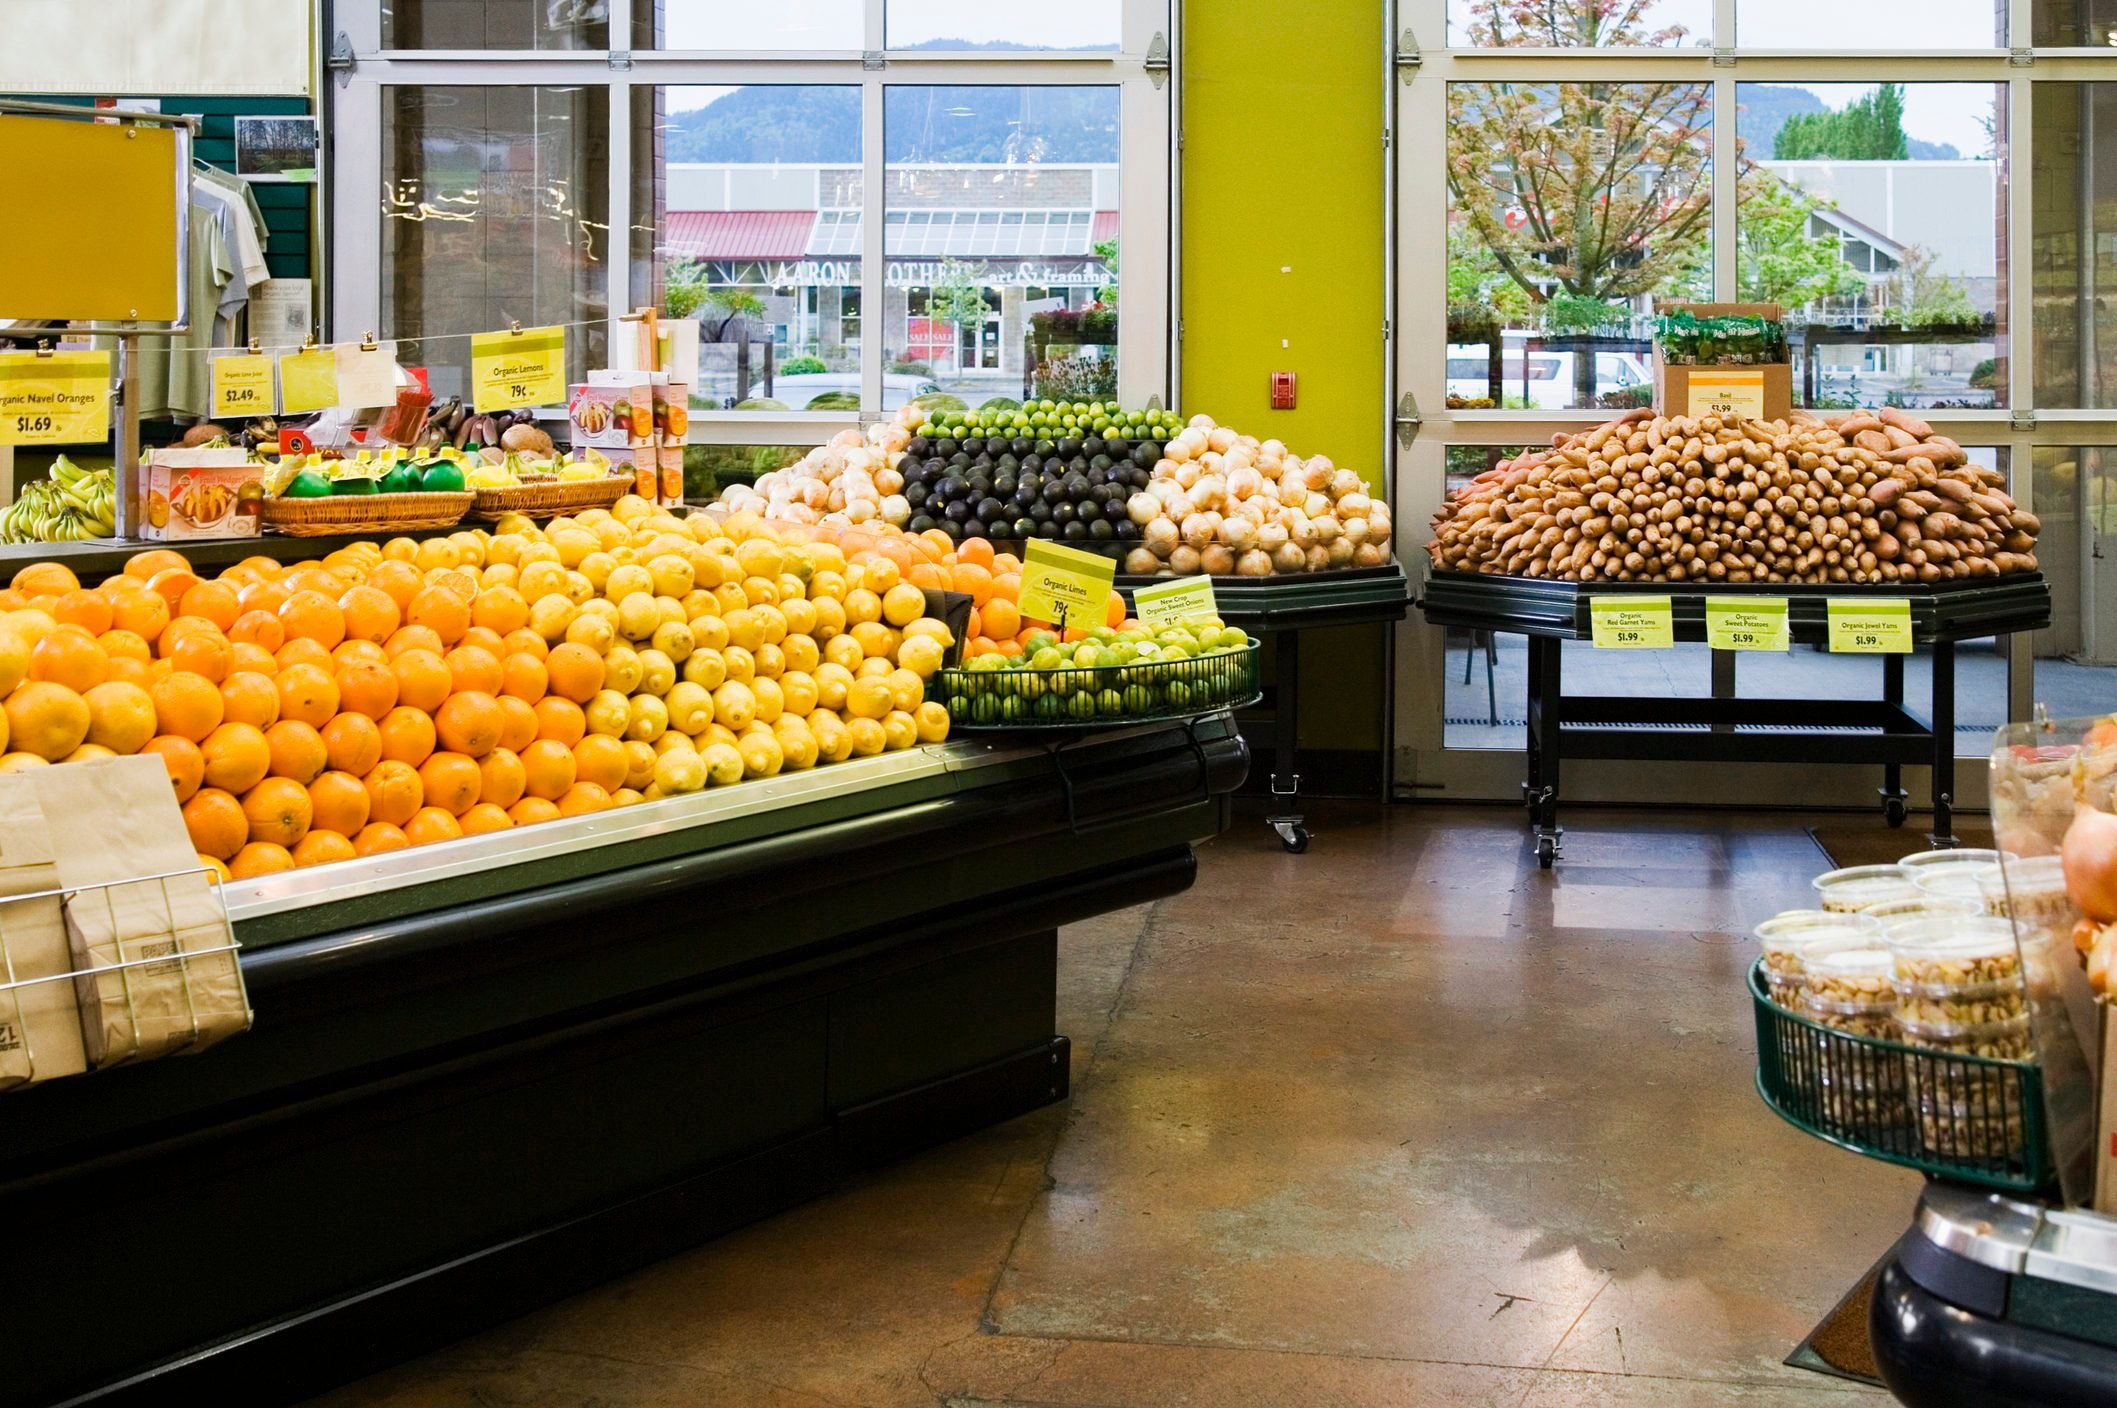 Fresh produce in grocery store